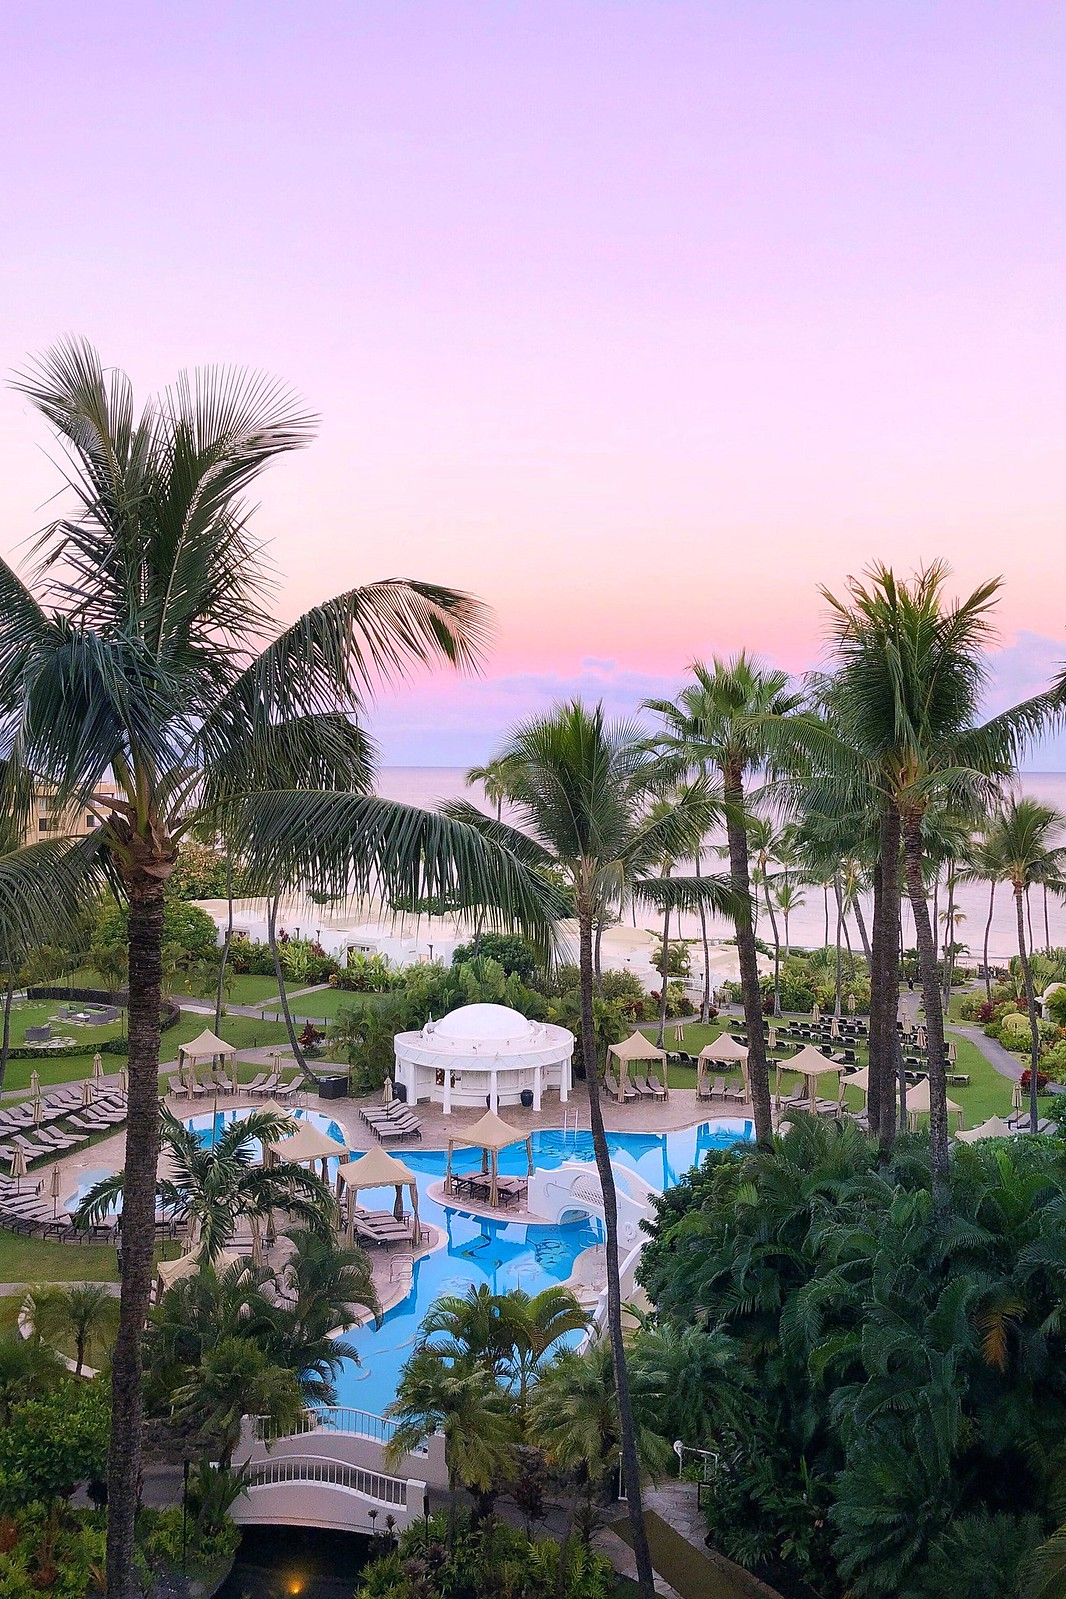 10 Places I Want to Travel After COVID-19 | Places to Travel after Lockdown is Over | Travel Aesthetic | Hawaii Aesthetic | Fairmont Kea Lani, Maui, Hawaii |  Best Hawaiian Beaches | Hawaii Cotton Candy Sunrise | Wailea-Makena